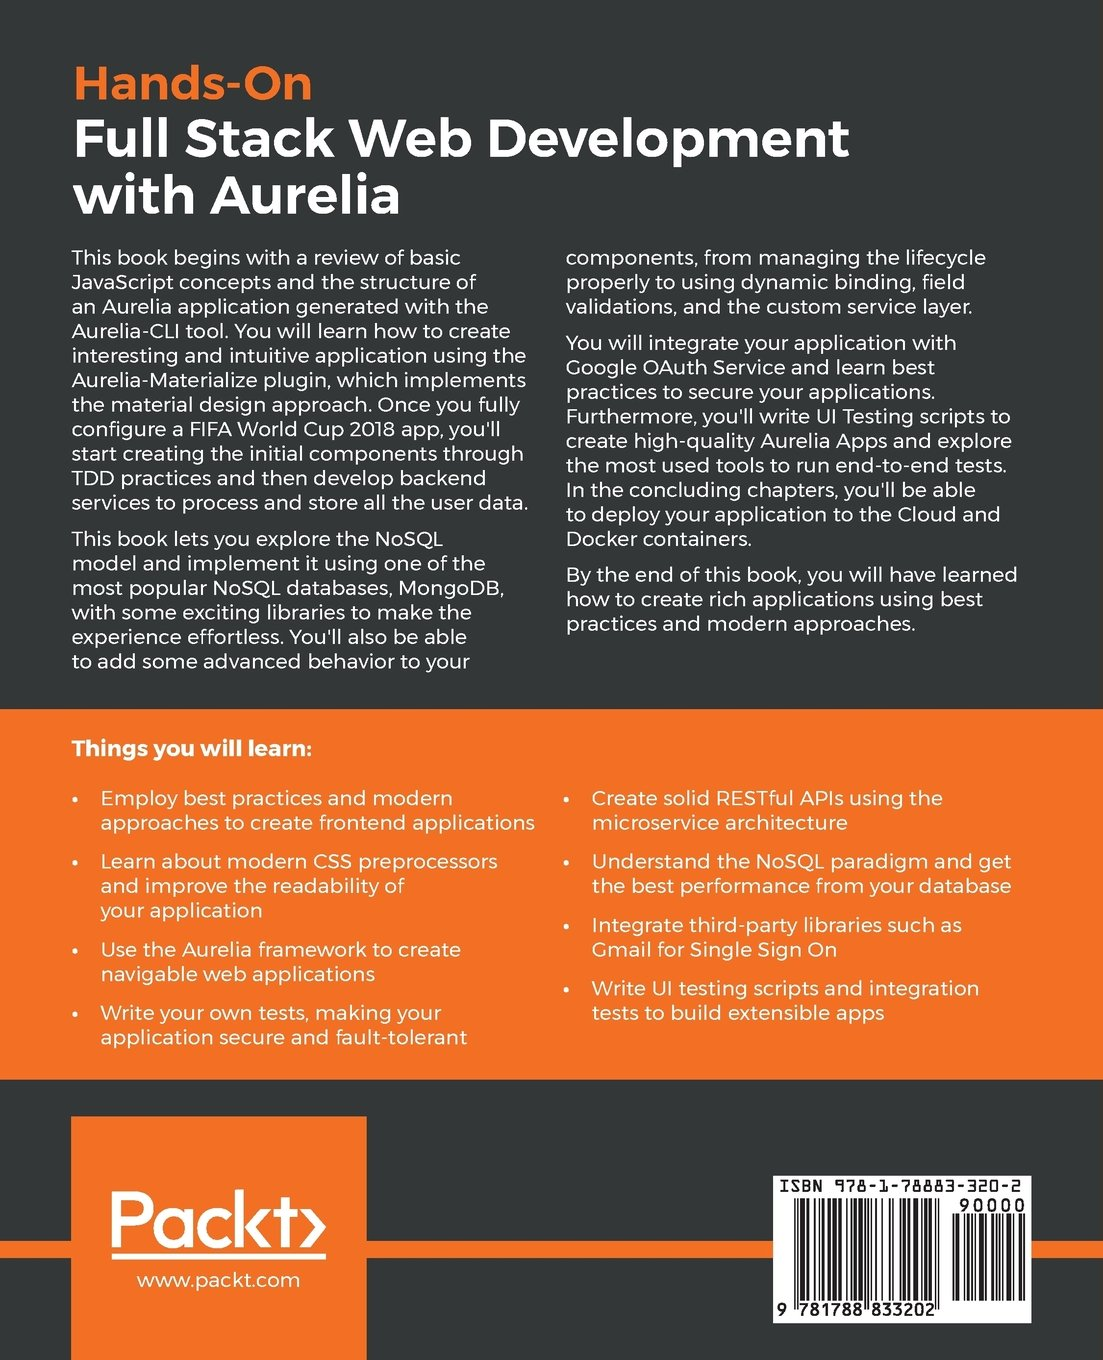 Hands-On Full Stack Web Development with Aurelia: Develop